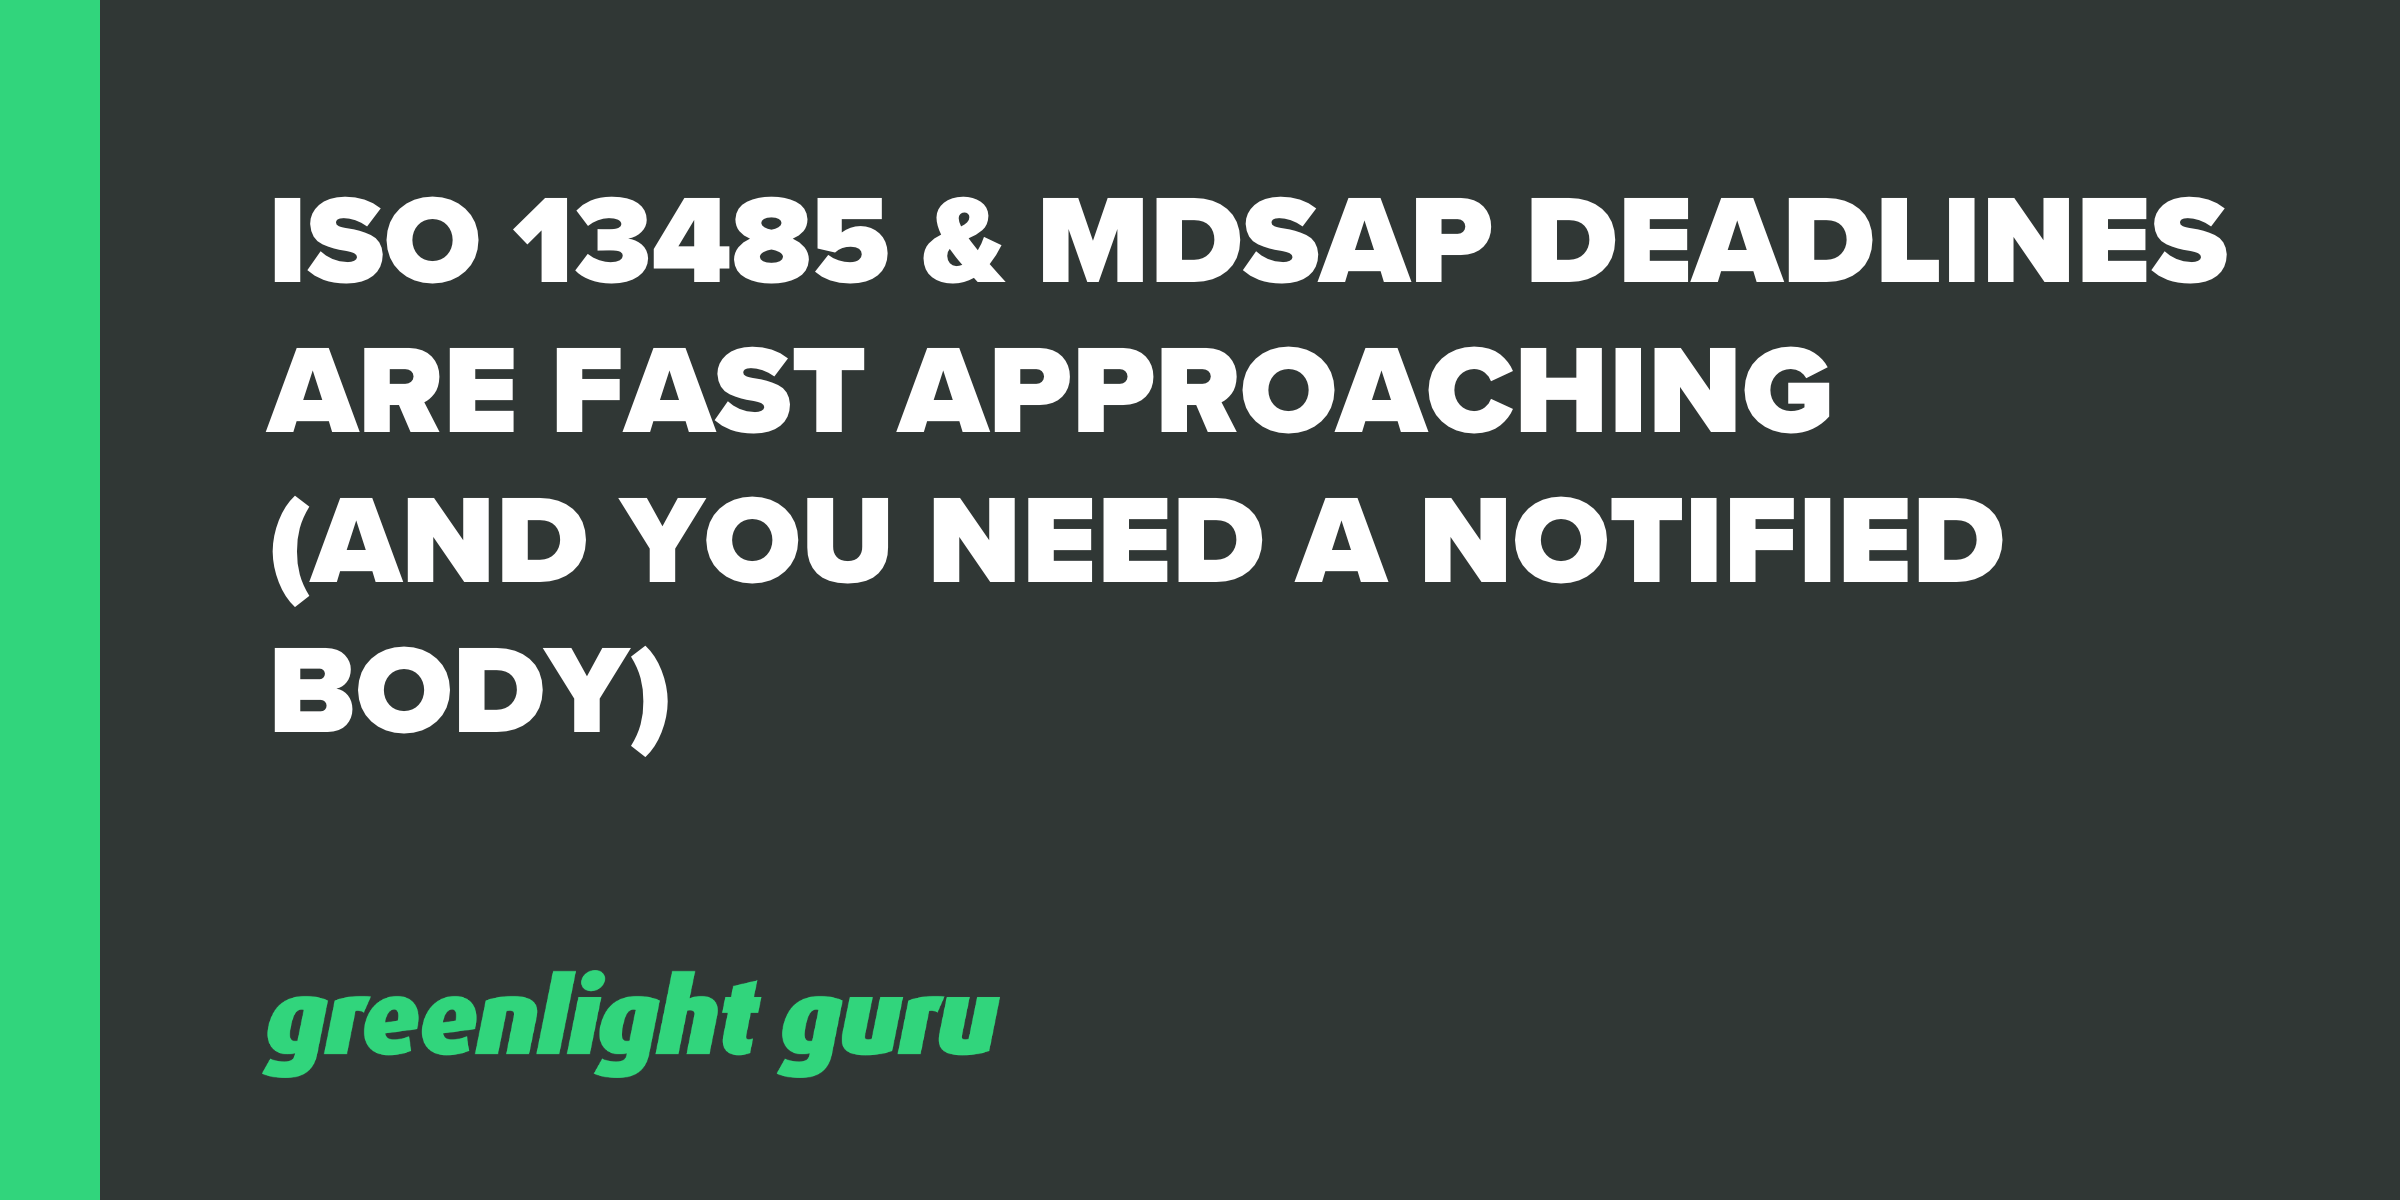 ISO 13485 & MDSAP Deadlines are Fast Approaching (And You Need a Notified Body)